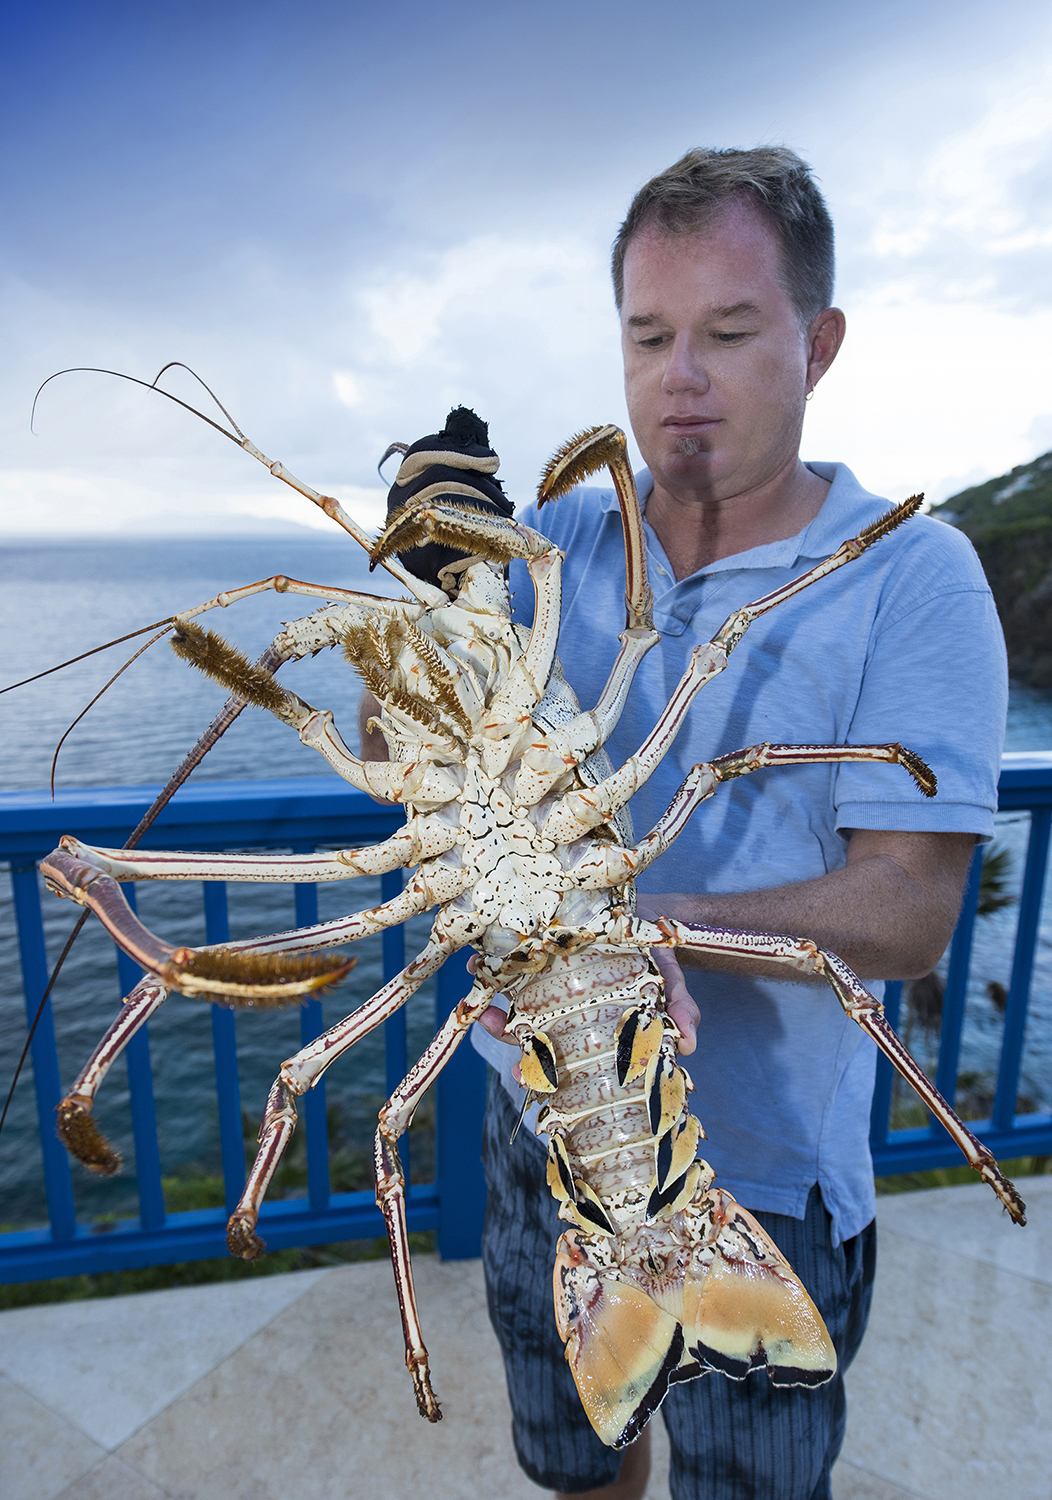 This beautiful seven pounder was caught only a few yards offshore from the cliffs of Villa Norbu. After being carefully steamed and shelled, leaving behind no trapped meat, this lobster served as dinner for five.